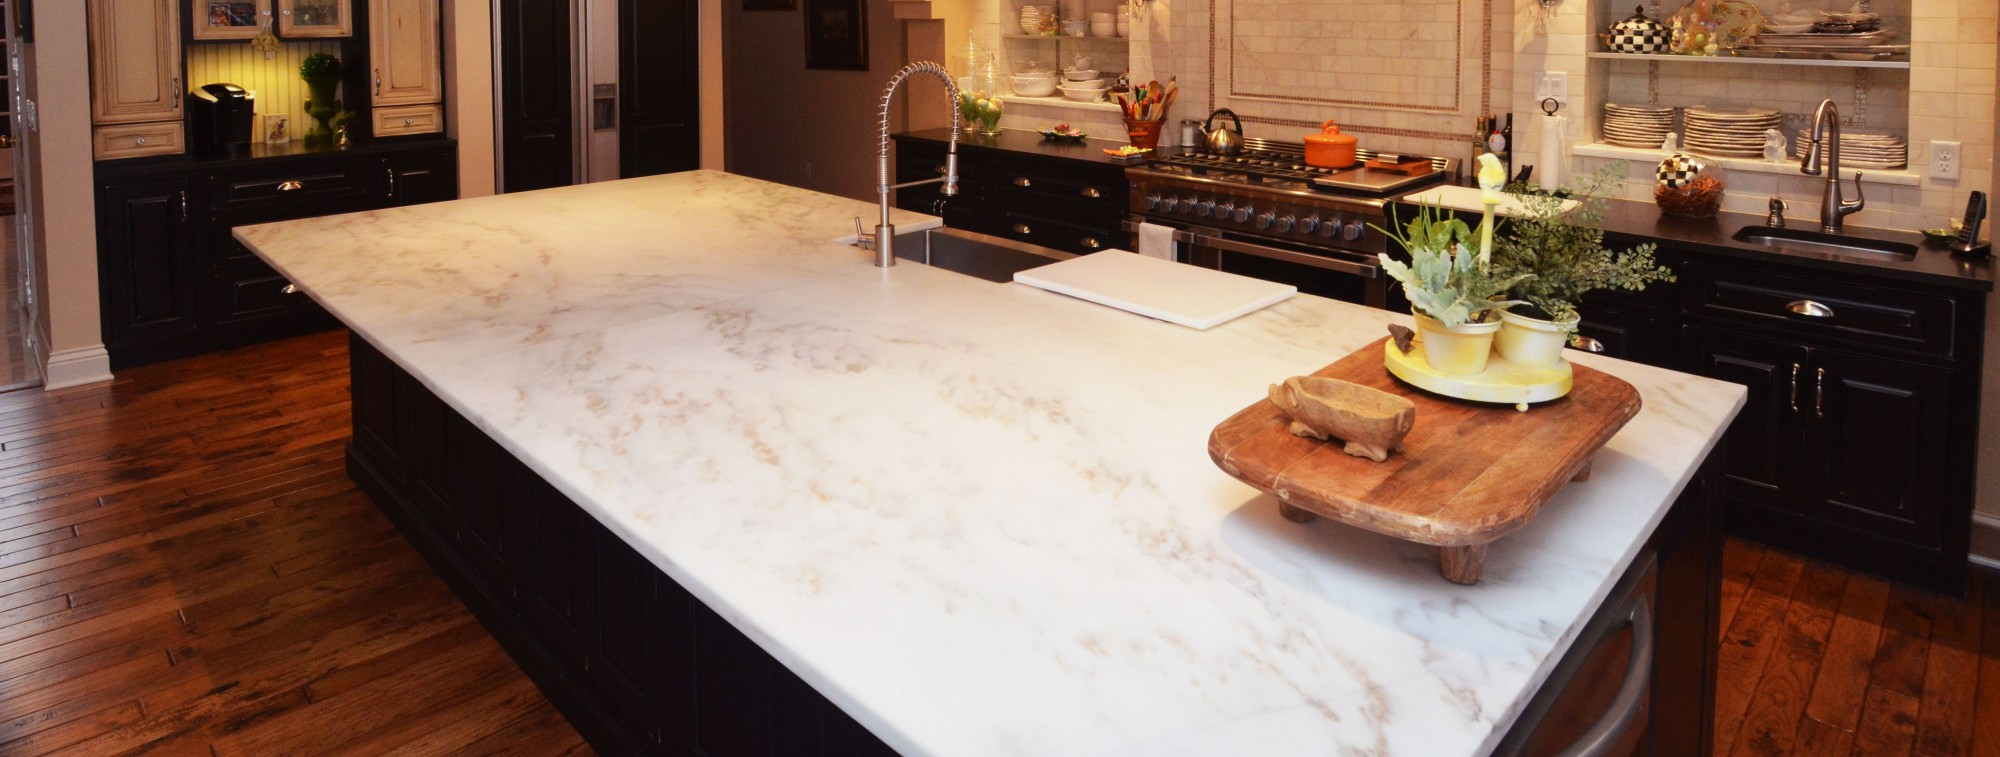 countertops design